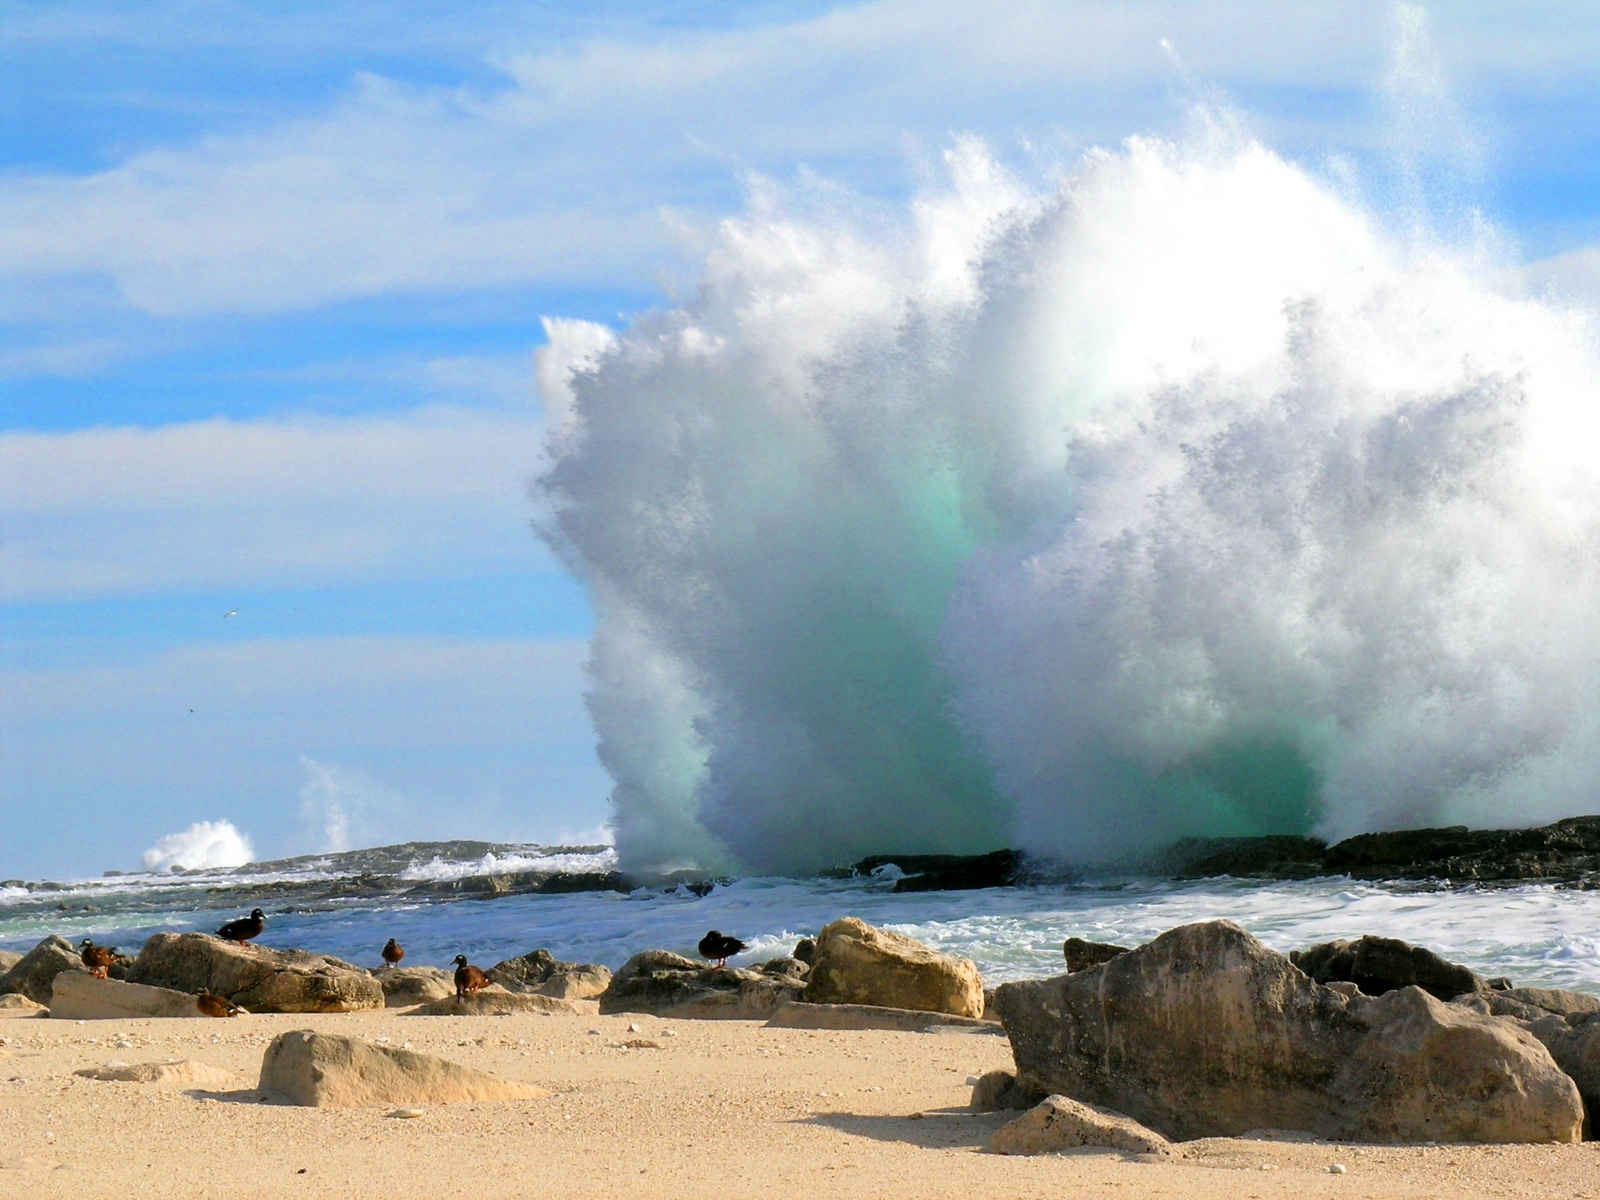 A large wave crashing the reef, endangered Laysan teal on beach in the foreground.